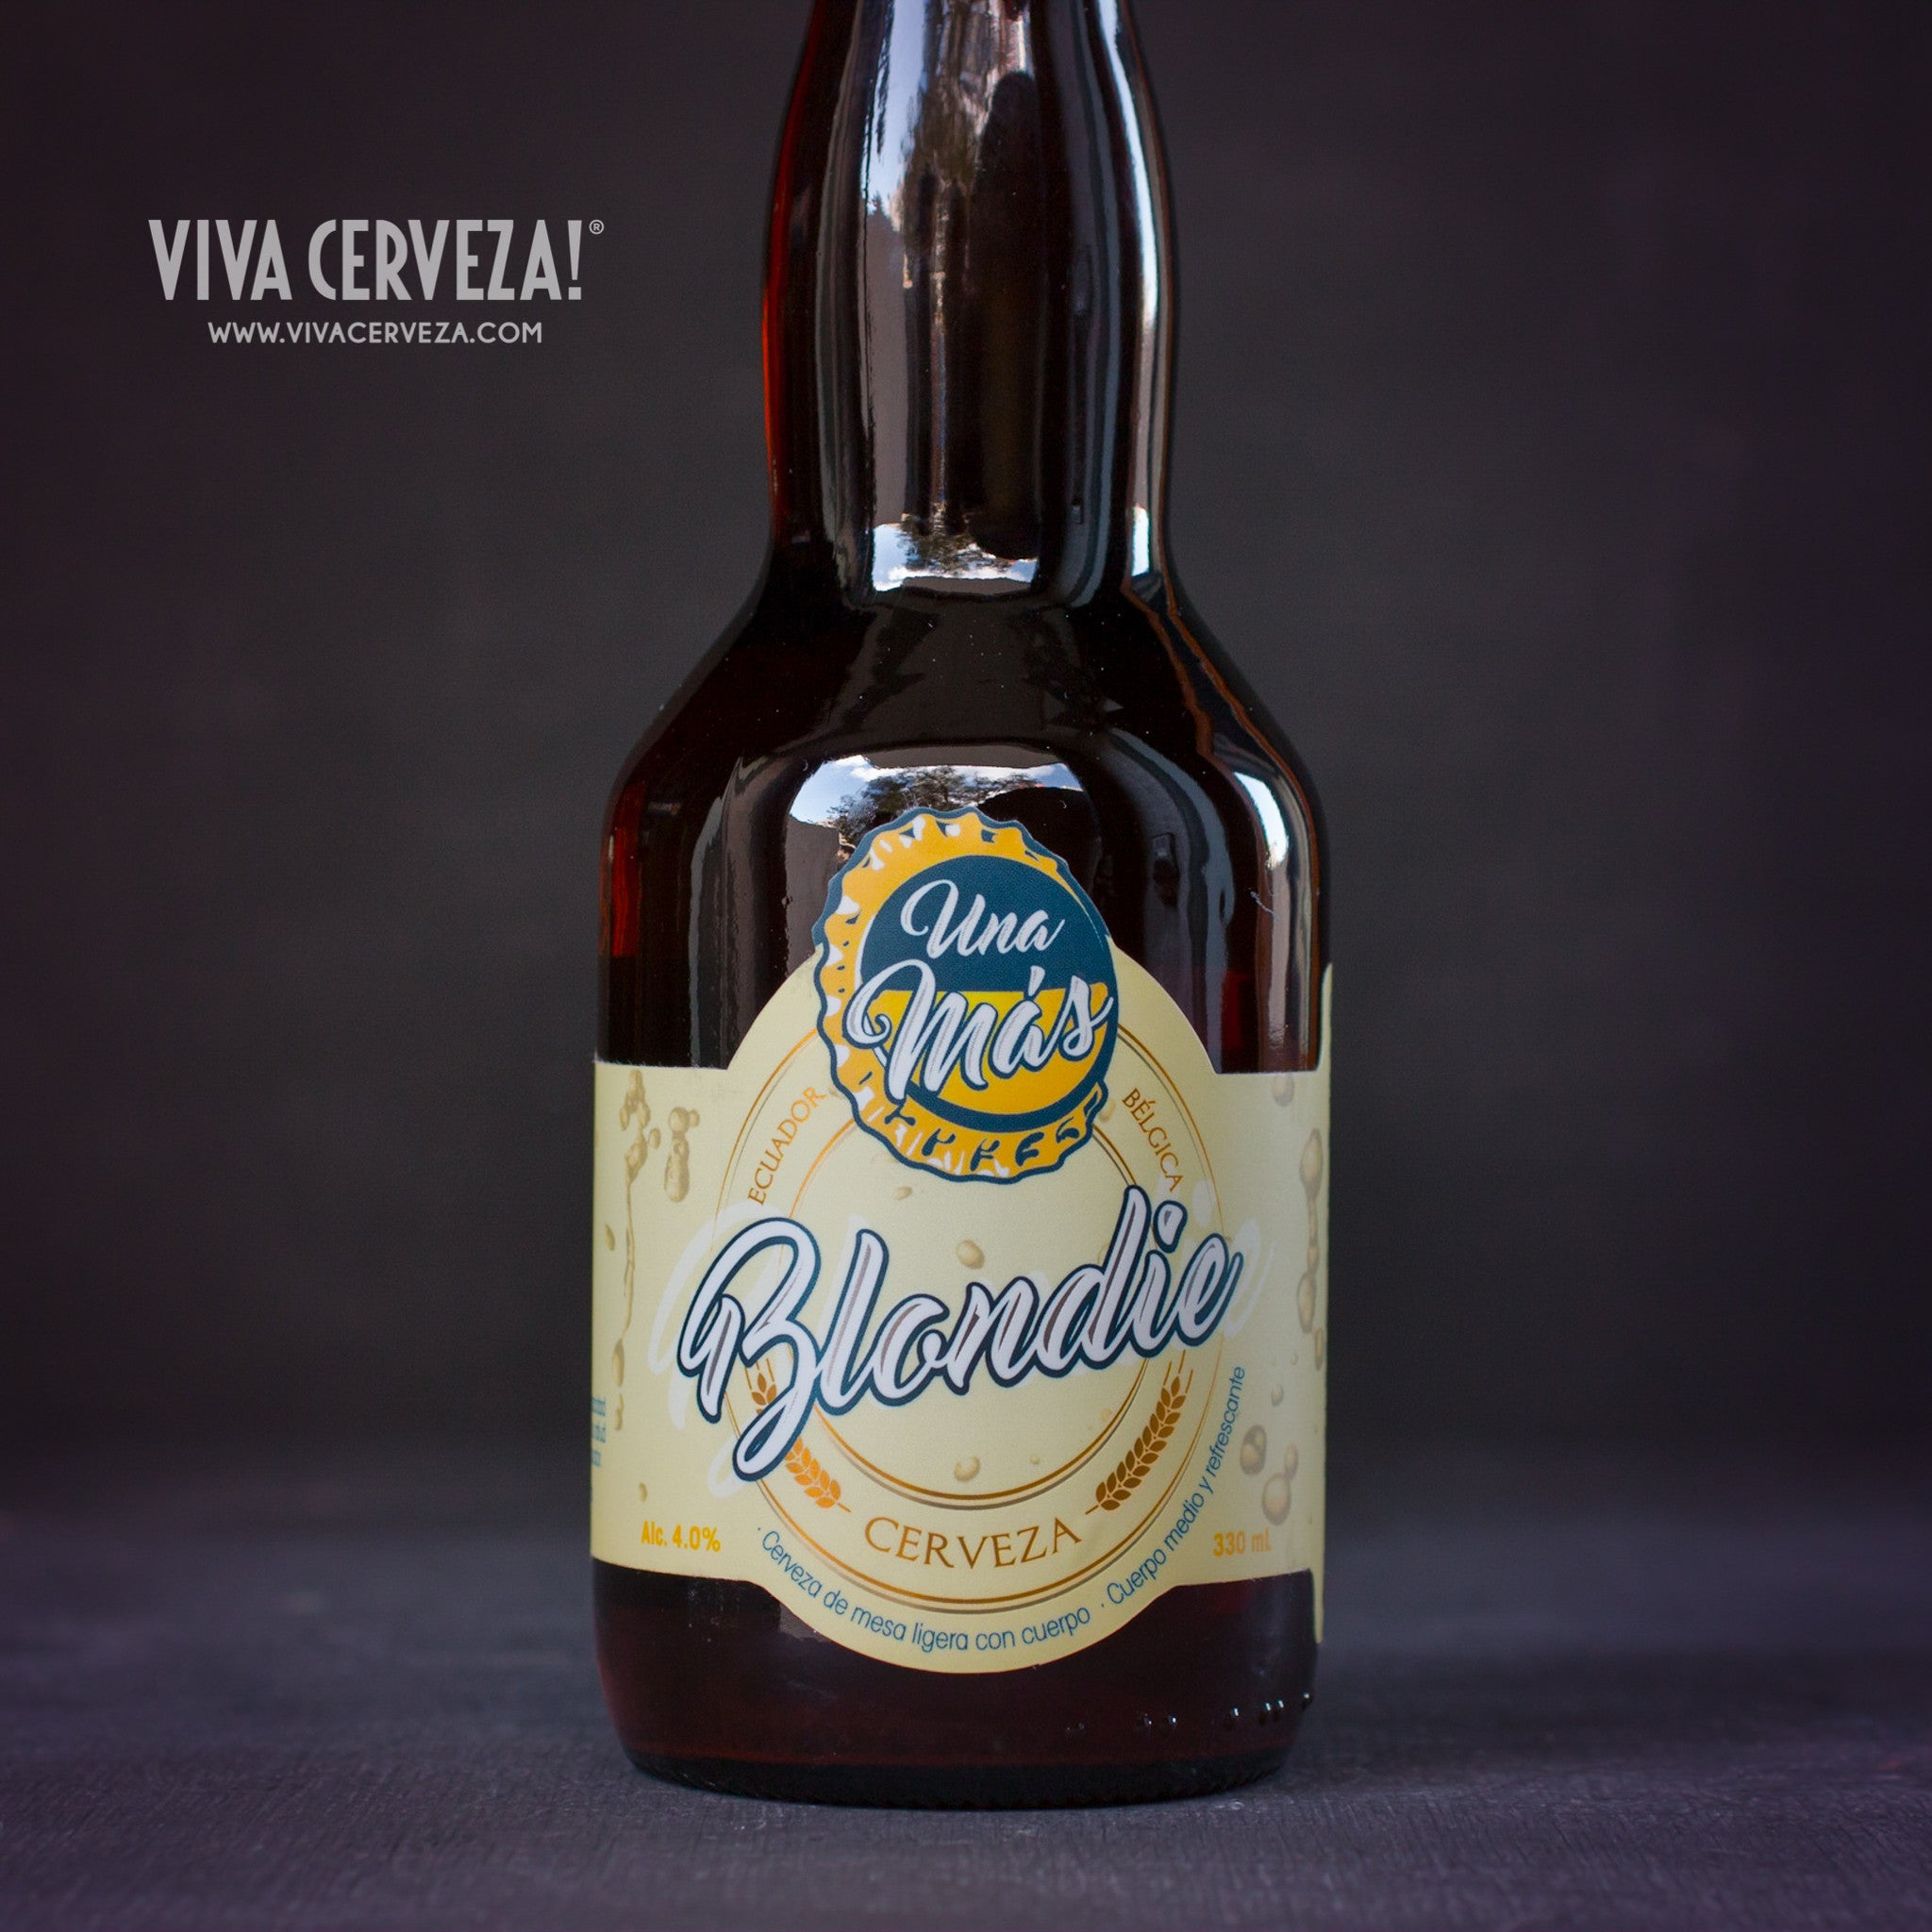 Una Mas Blondie - 330ml Botella Cerveza Artesanal Craft Beer Ecuador - %